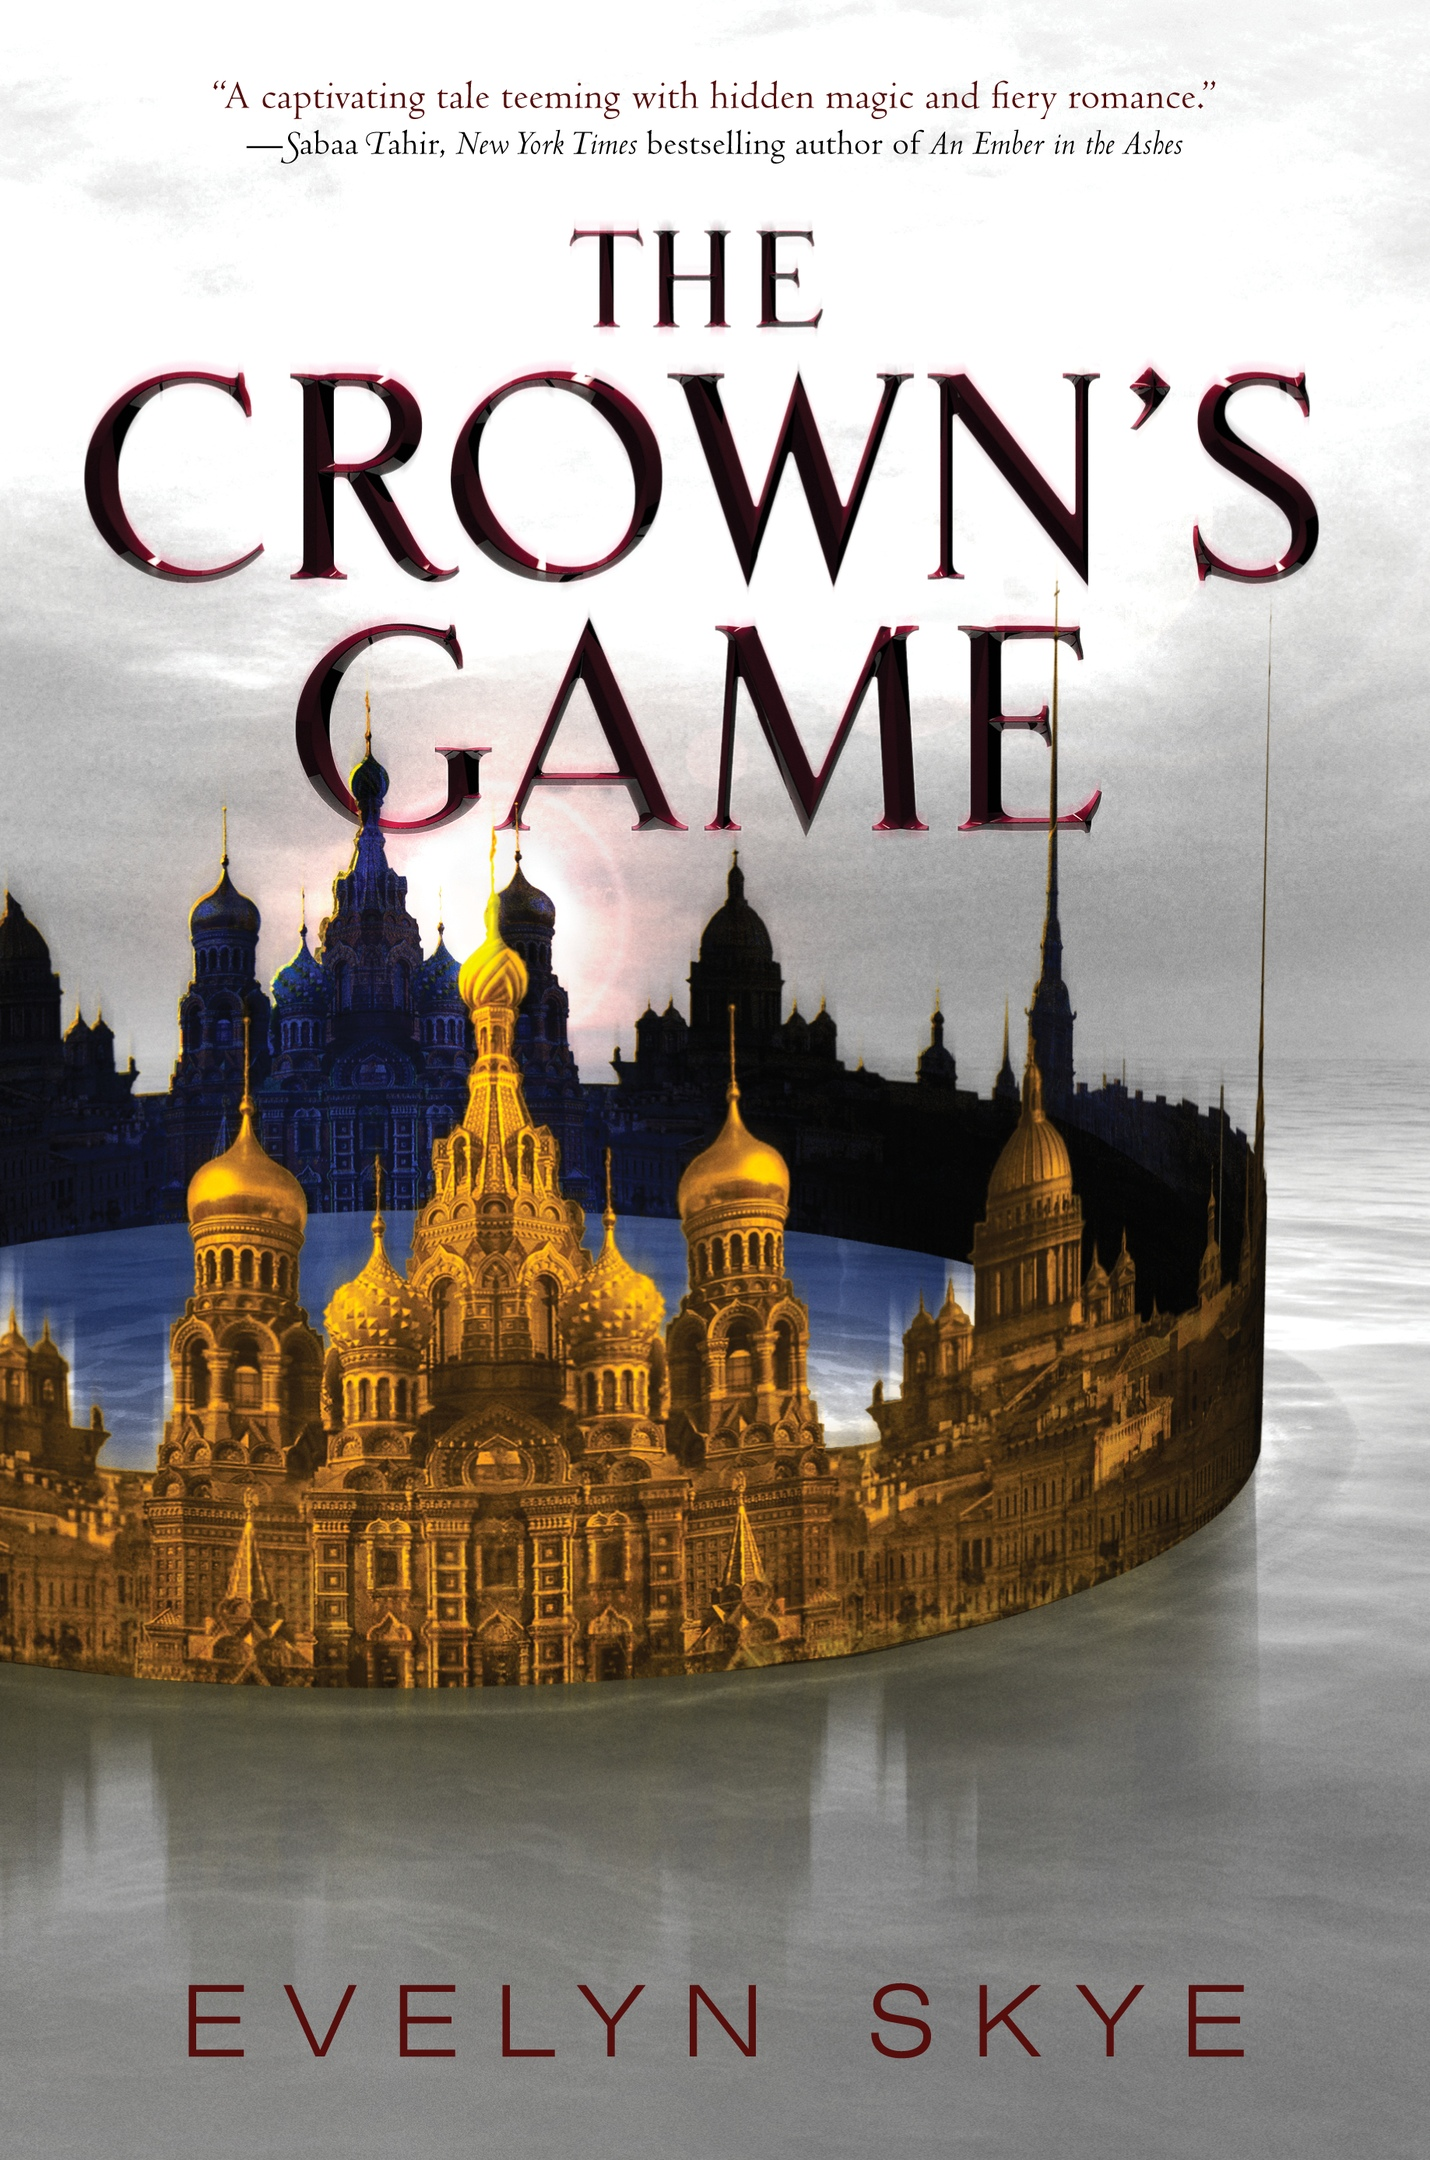 Evelyn Skye – The Crown's Game Genre: